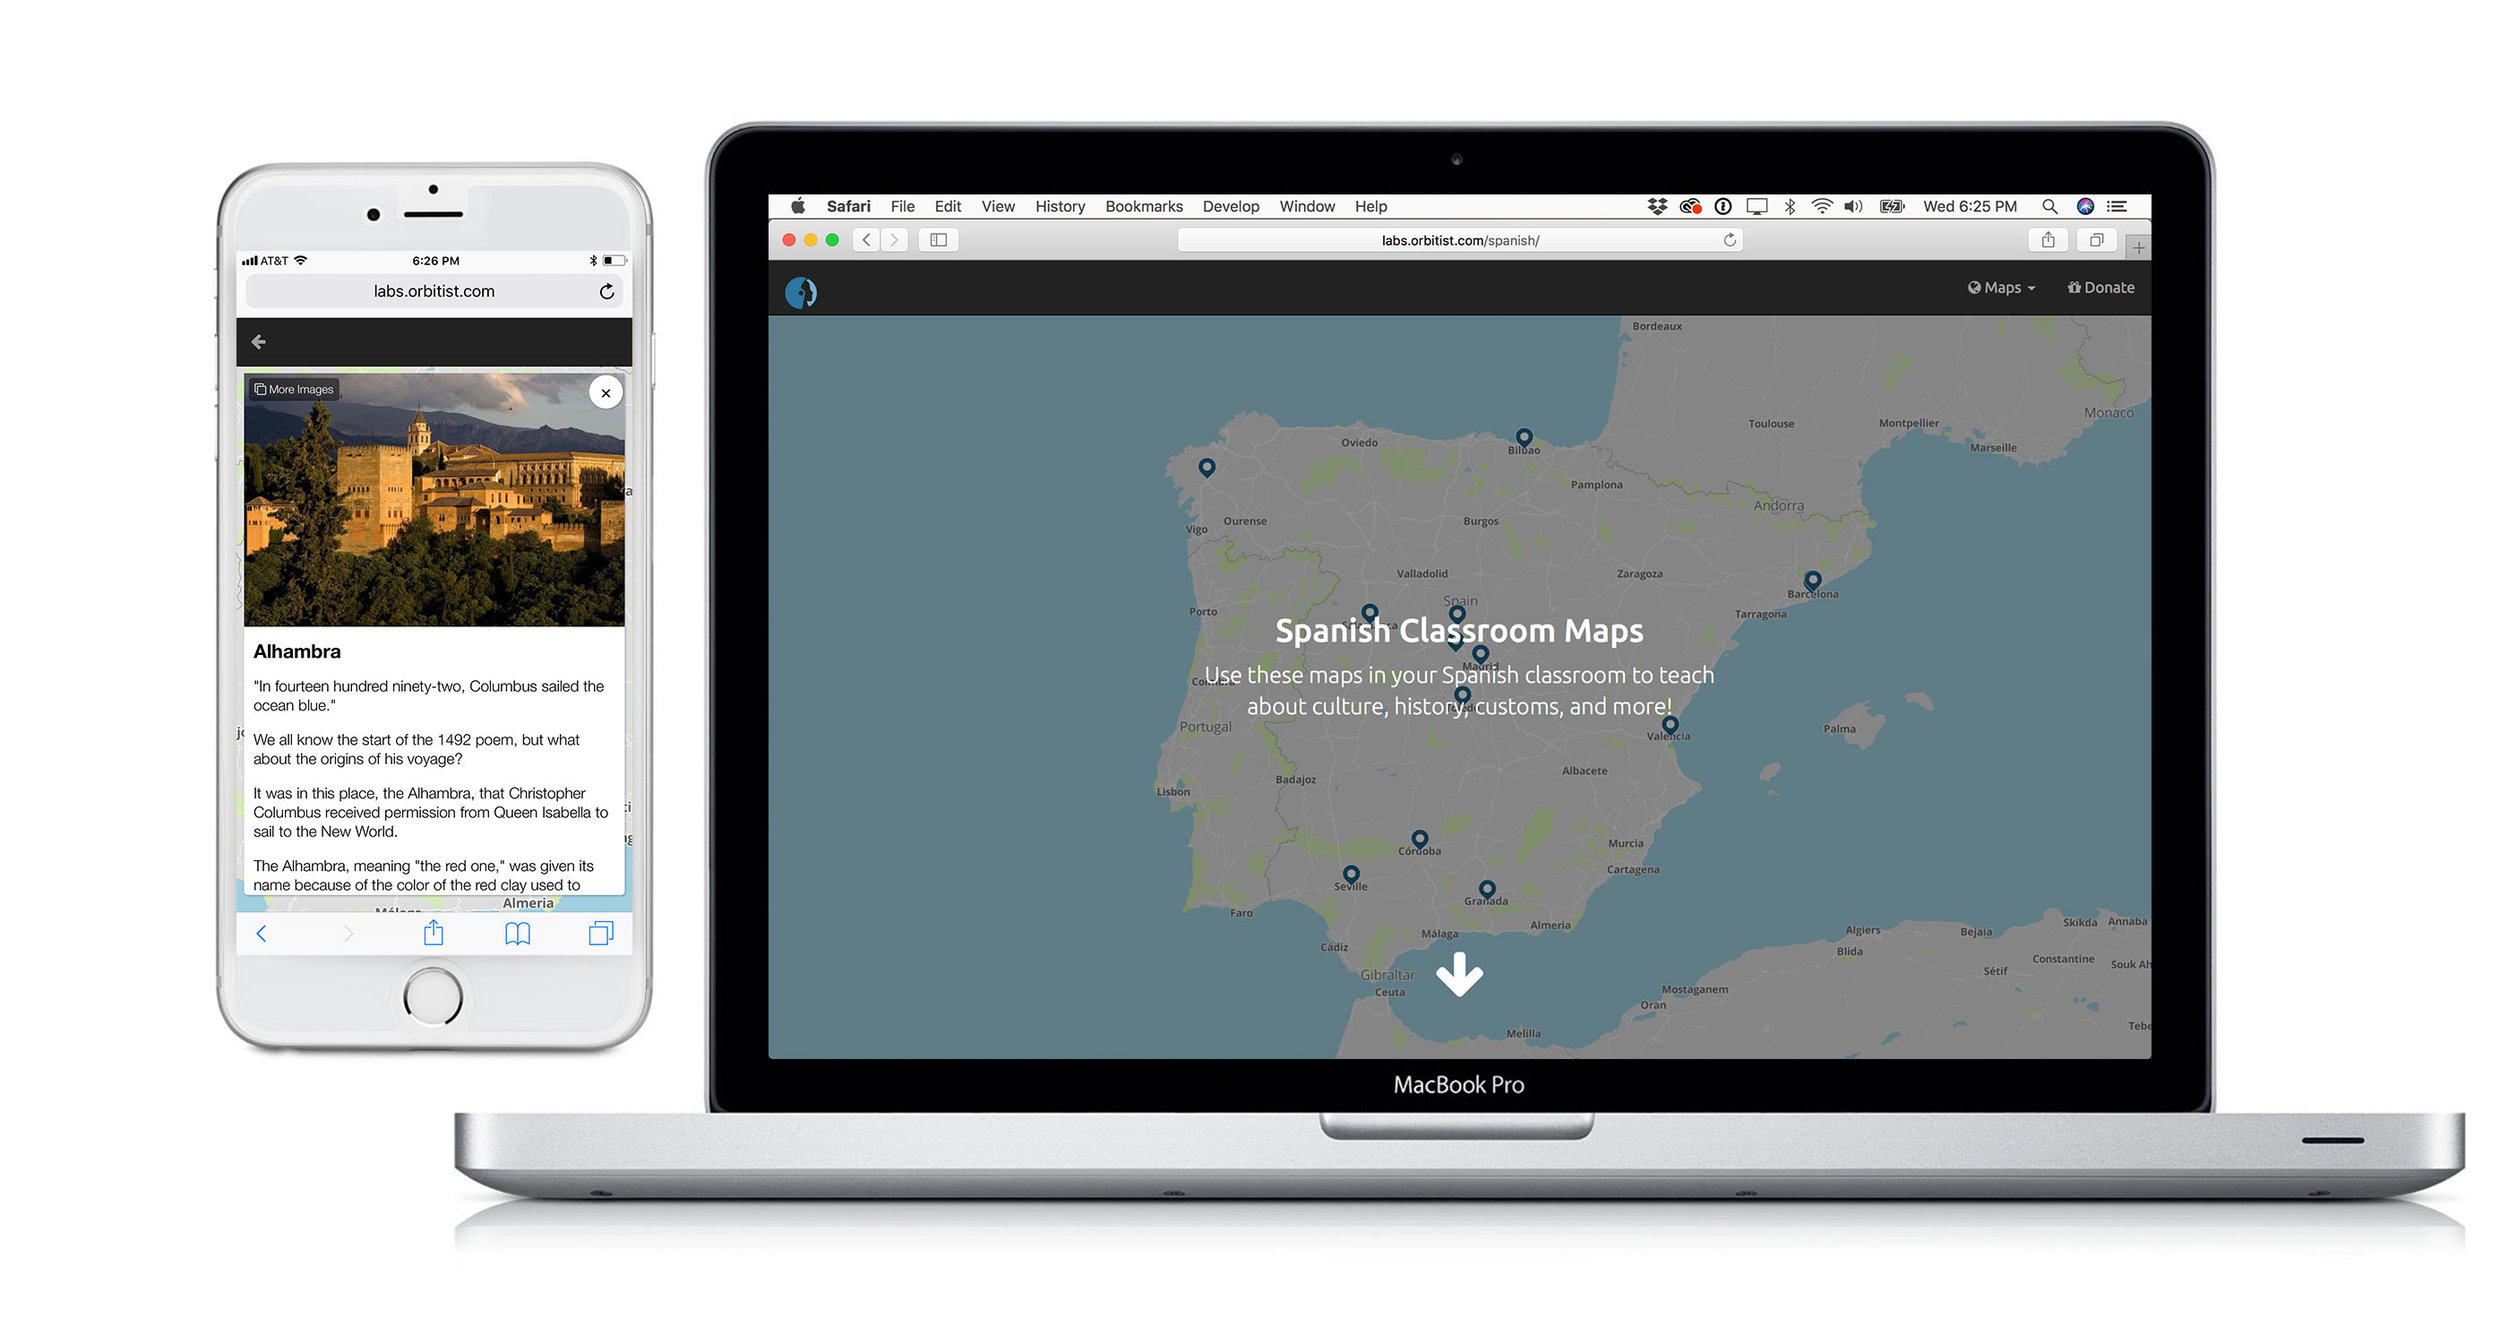 Spanish Classroom Mapping Application